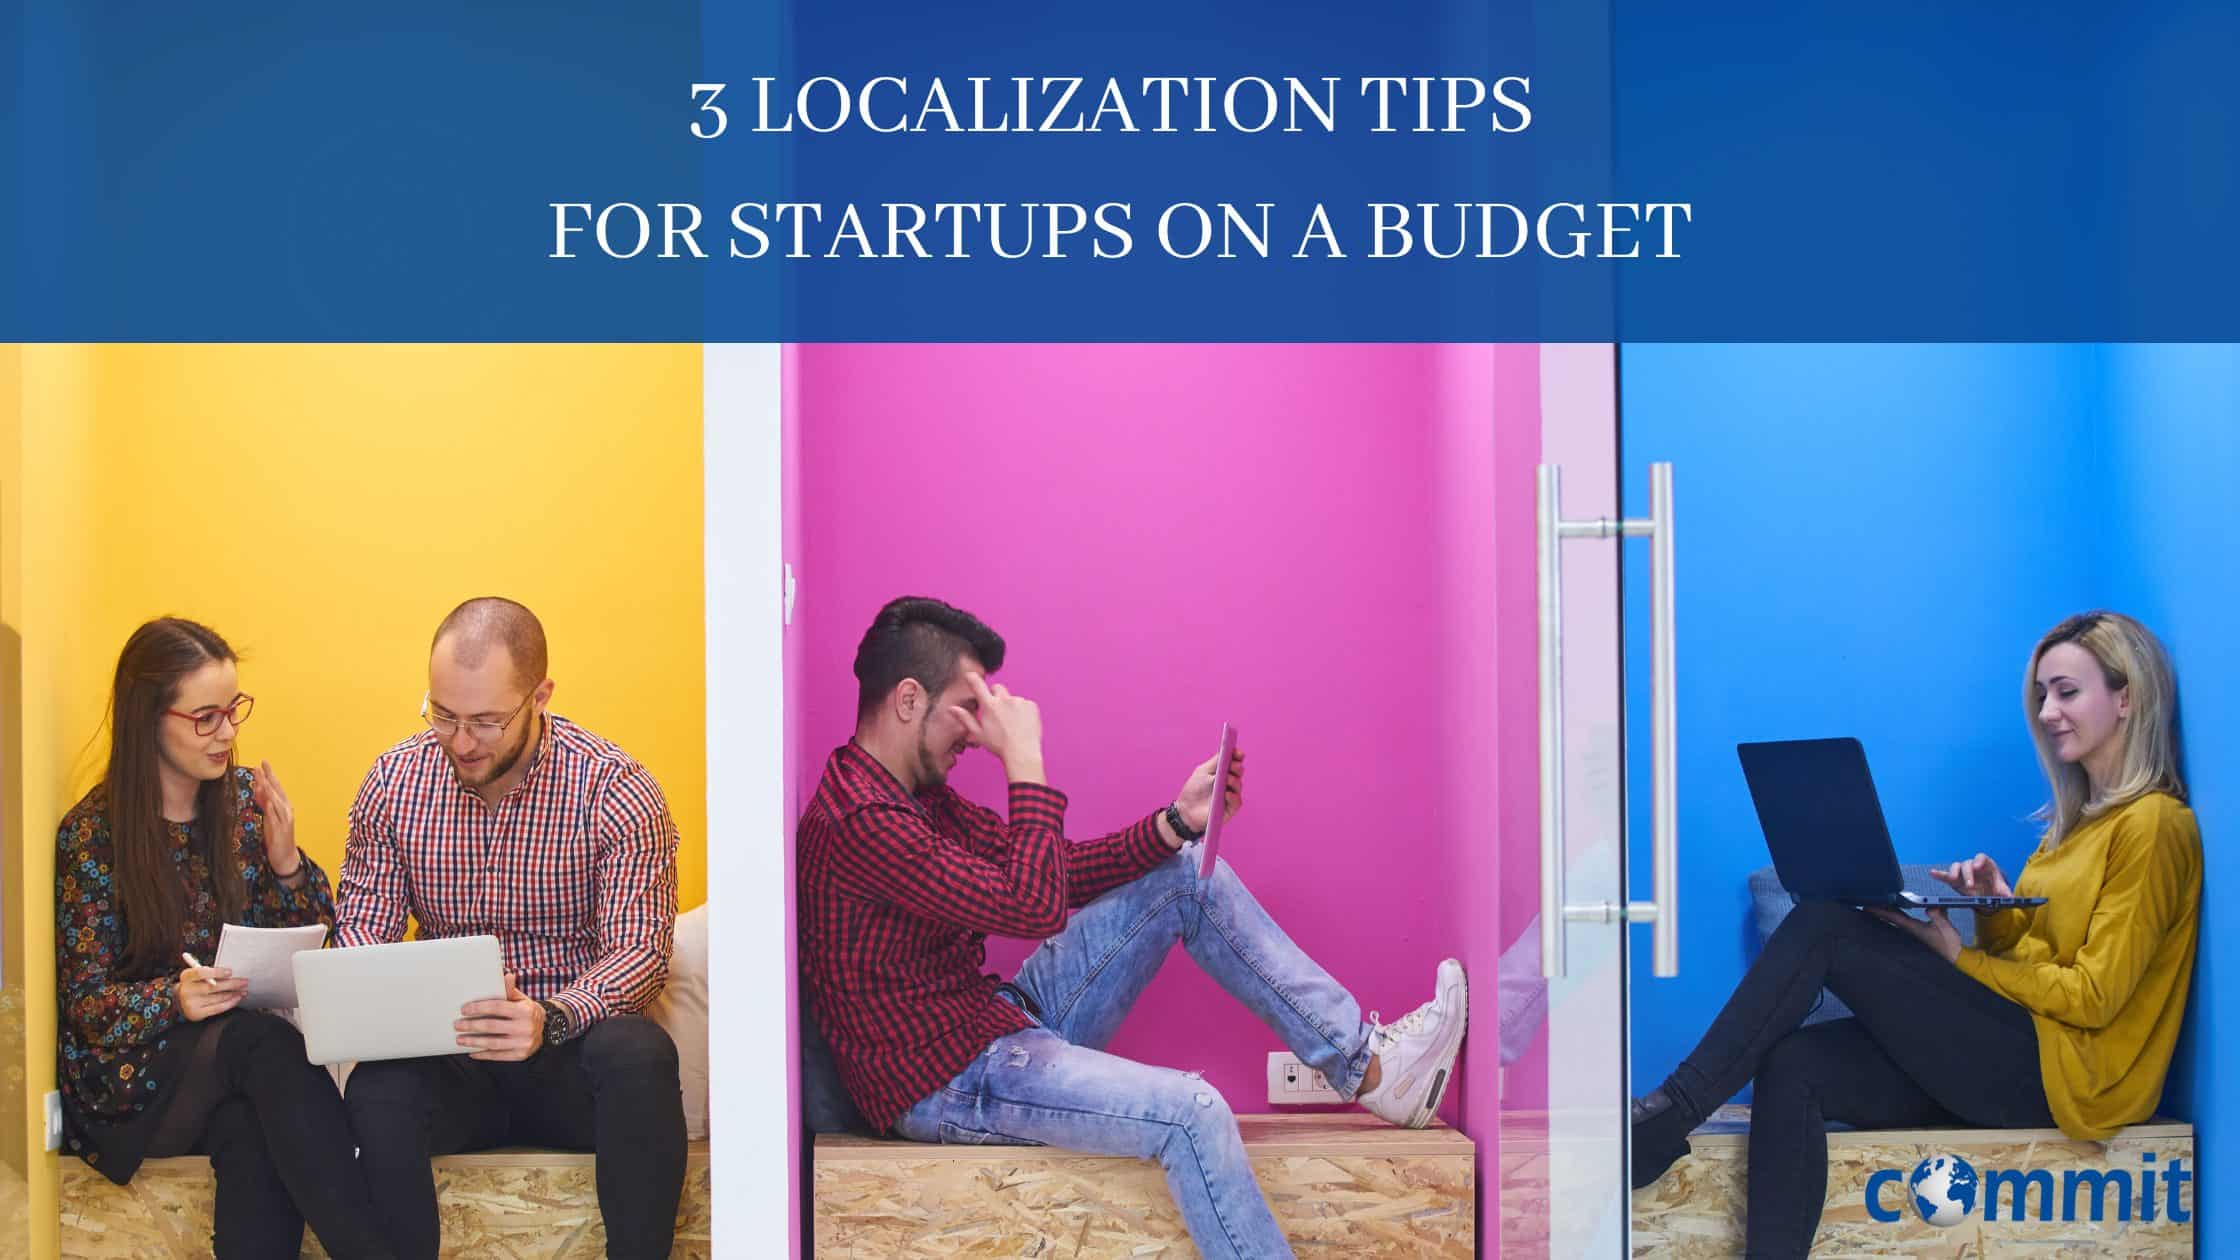 3 Localization Tips for Startups on a Budget